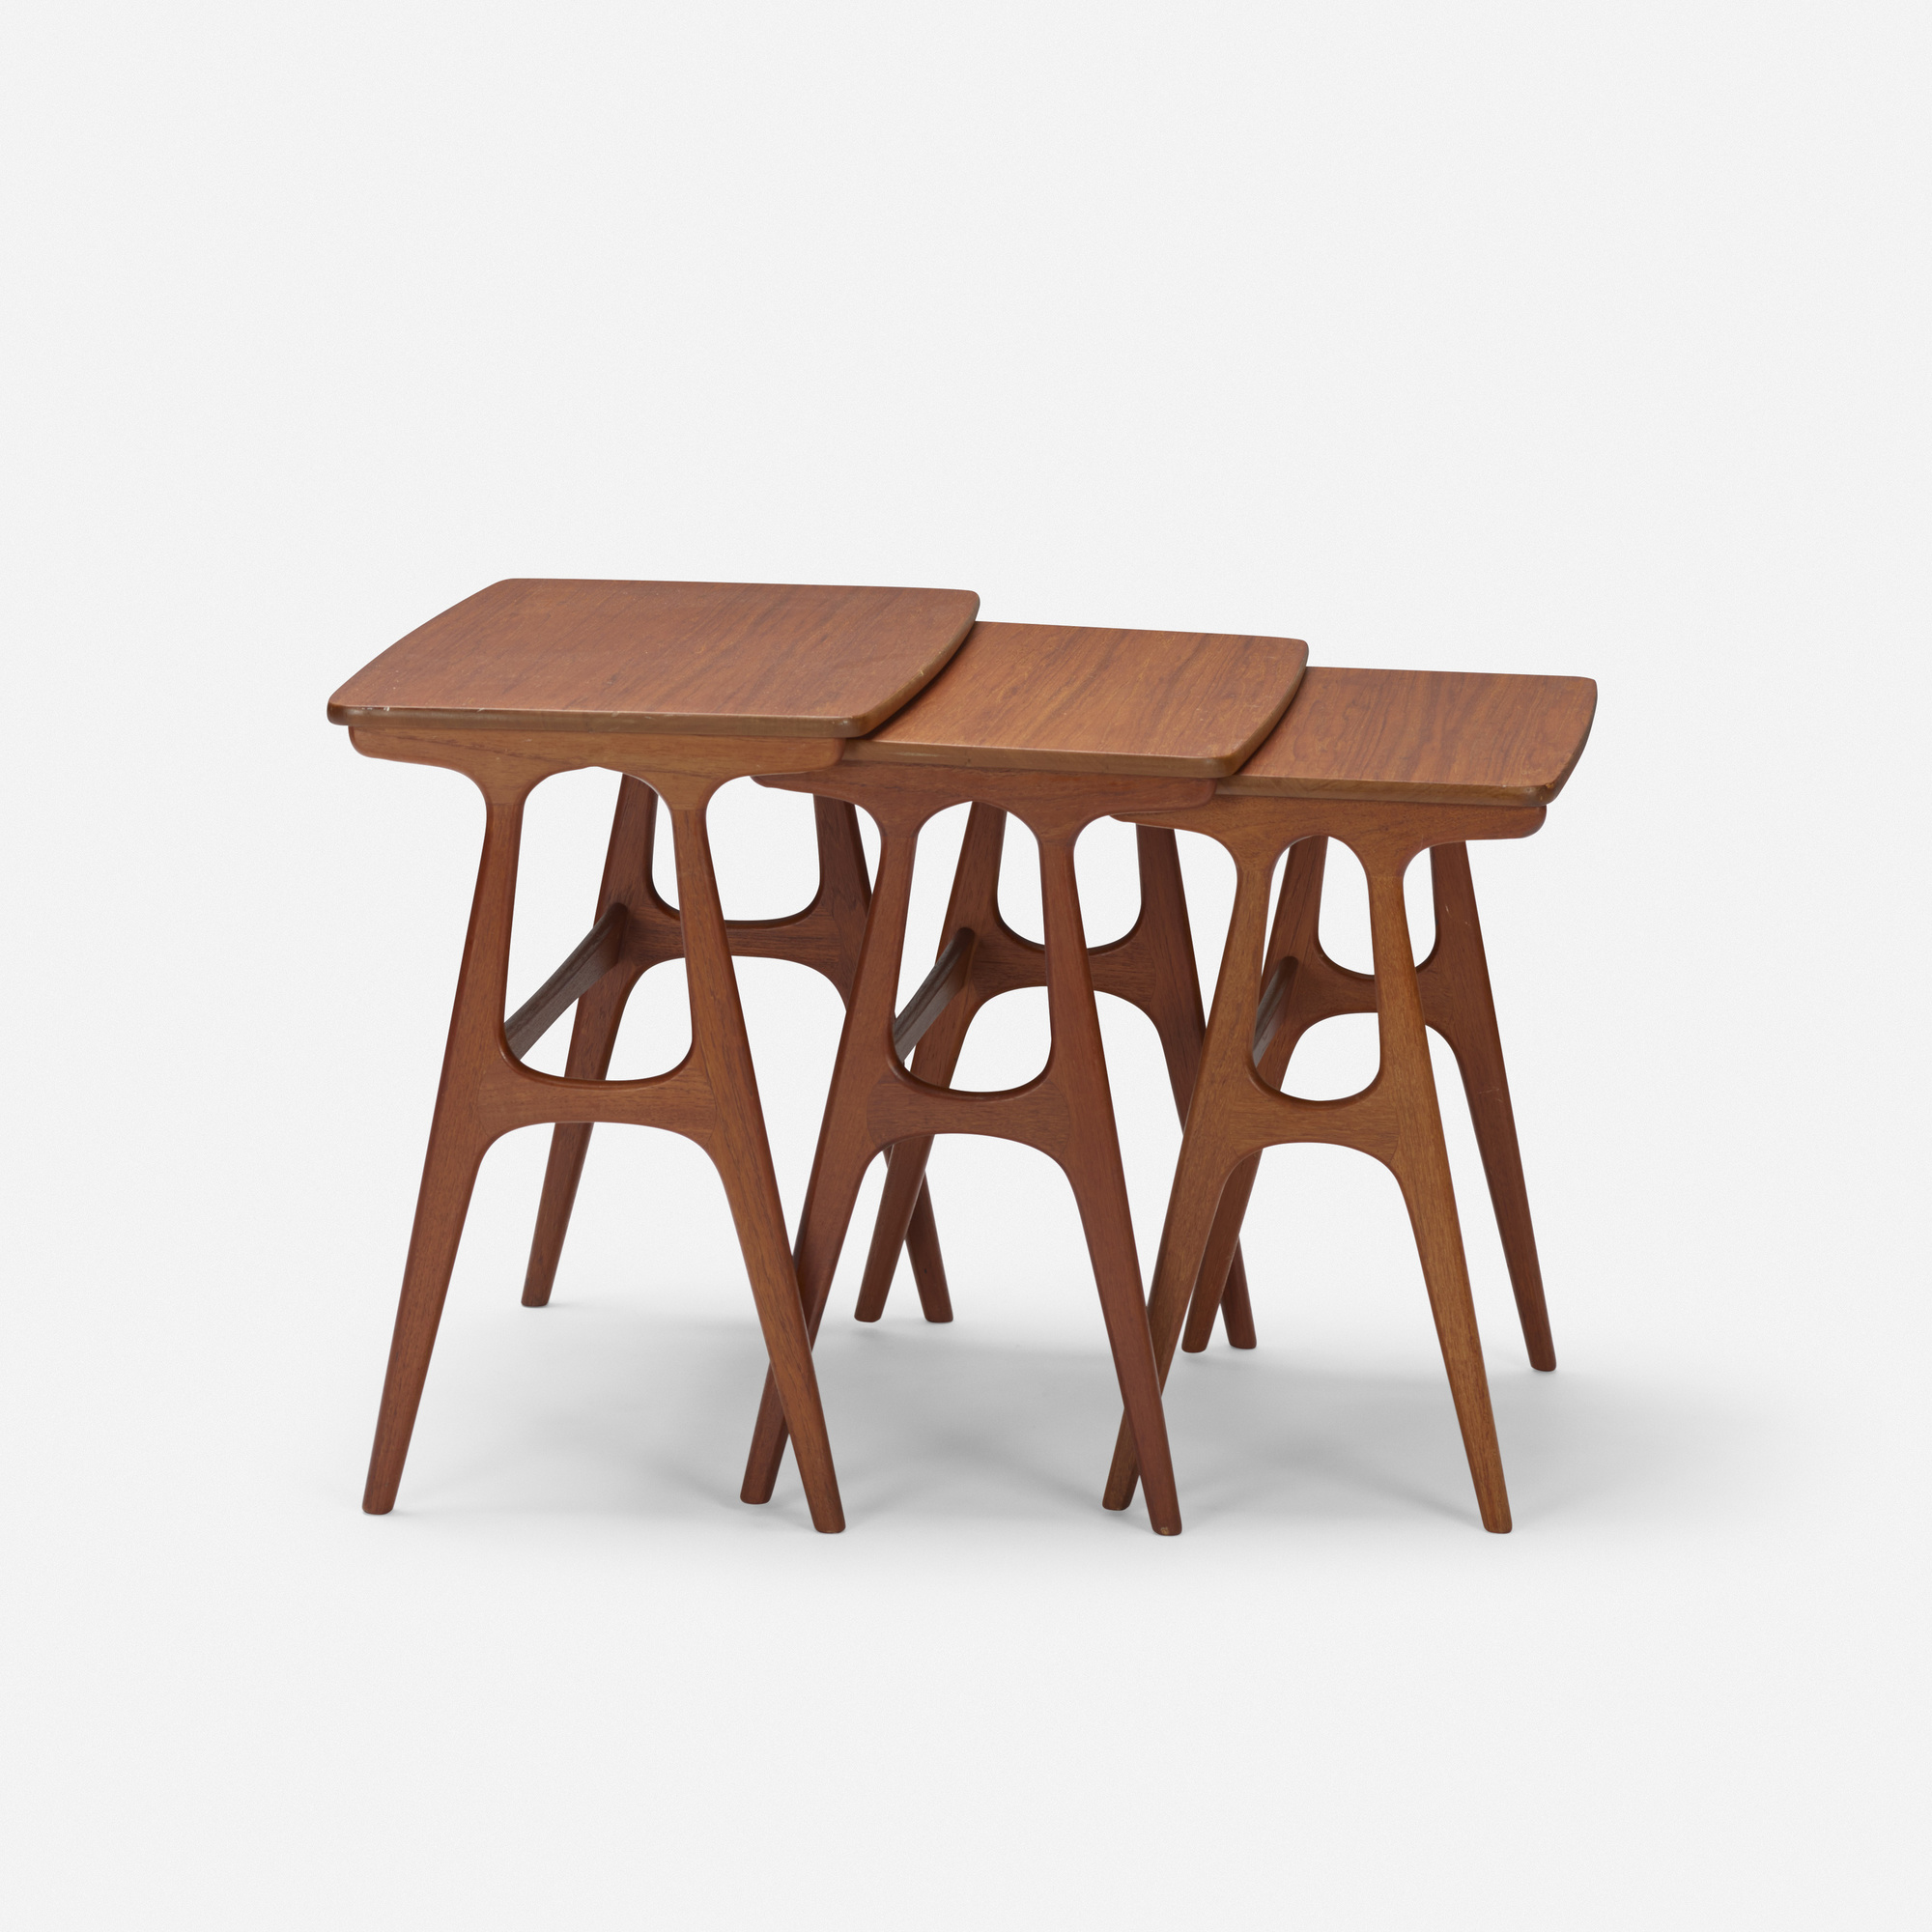 147: Erling Torvits / nesting tables, set of three (1 of 2)